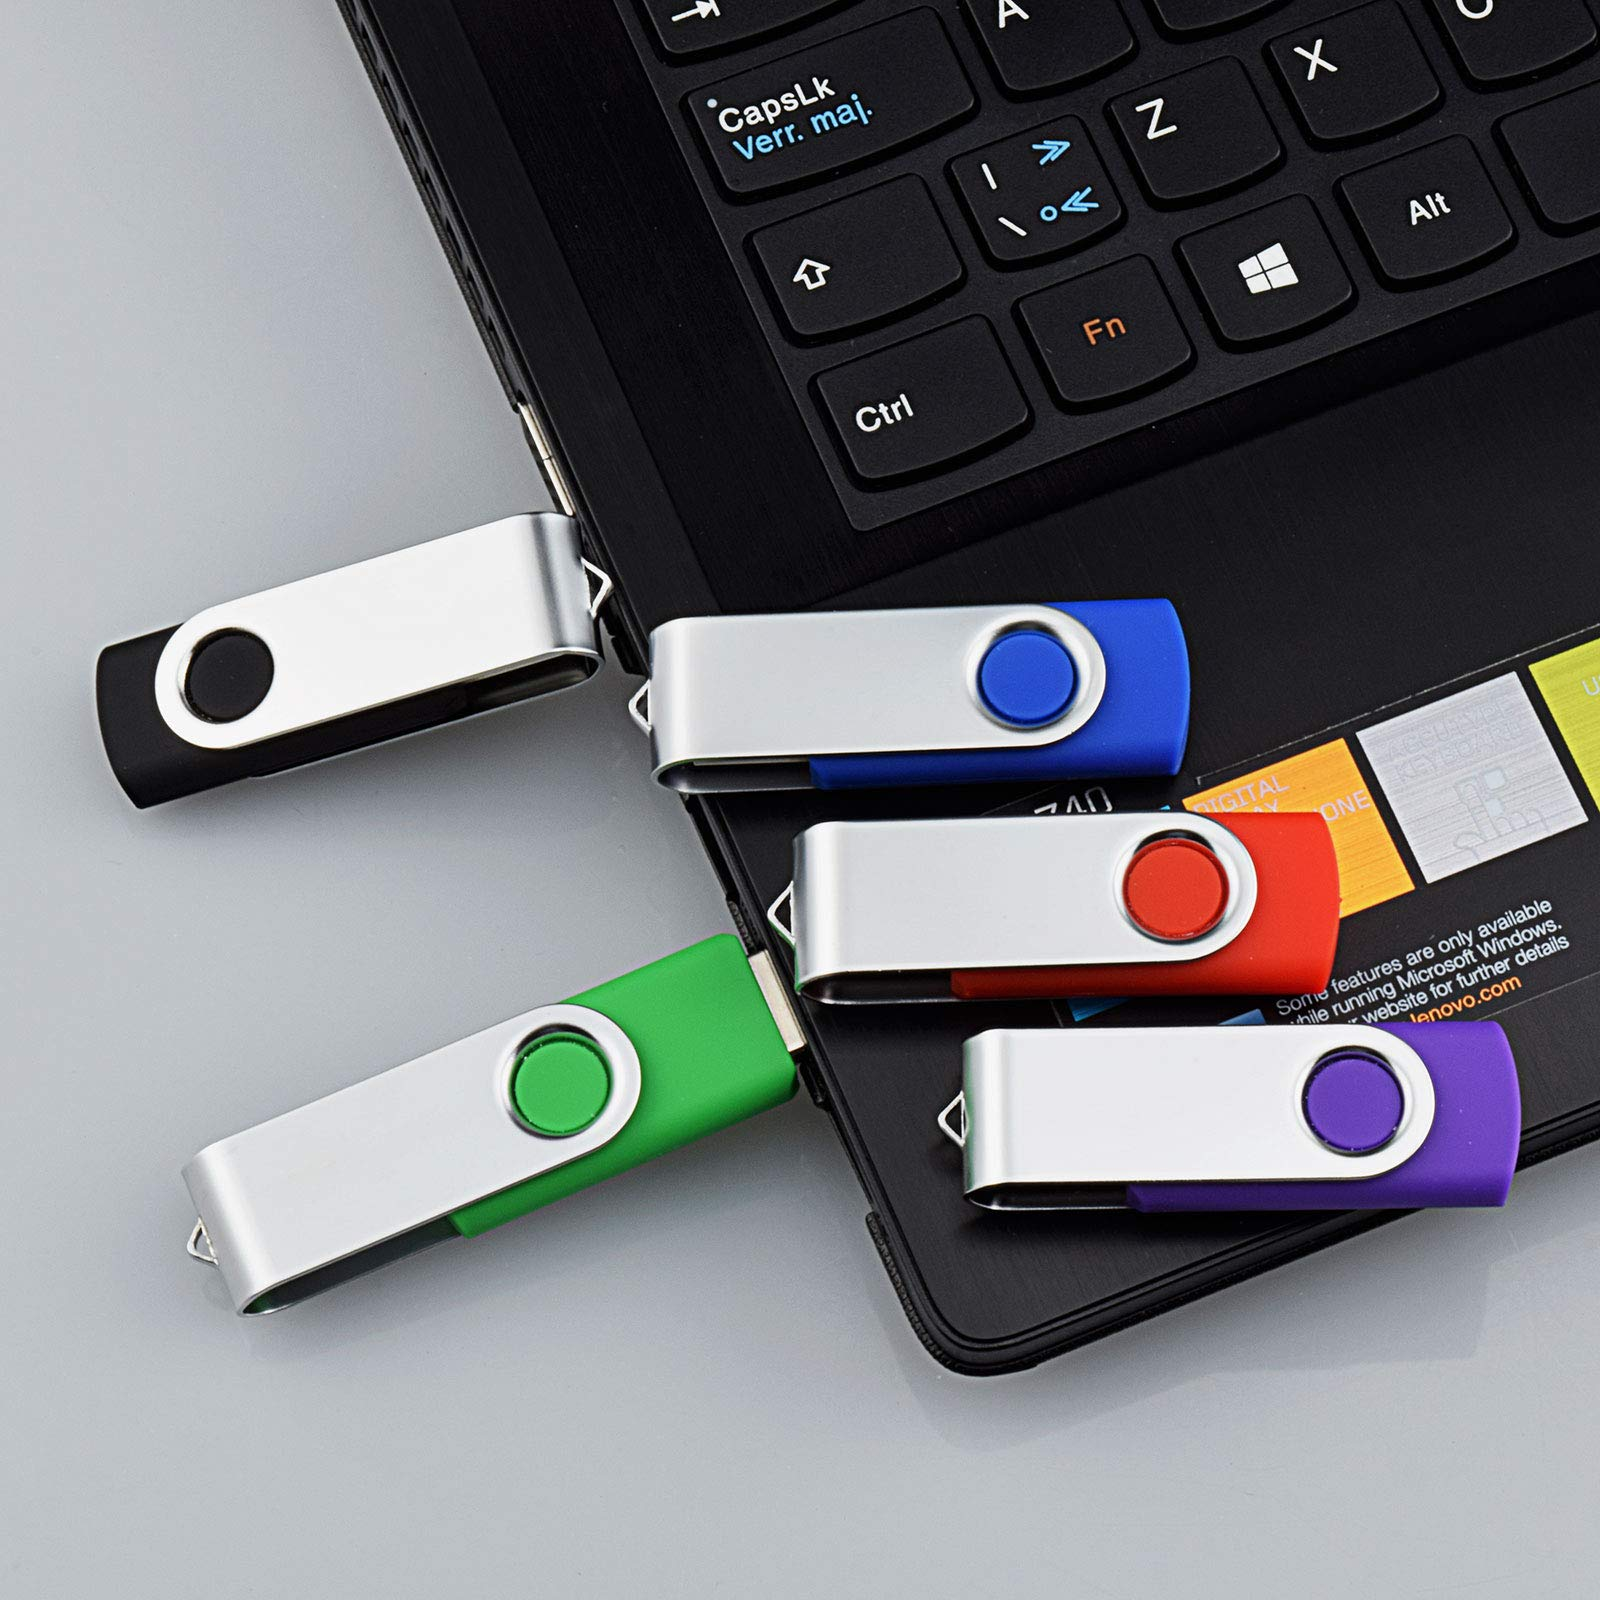 KOOTION 5 X 64GB USB2.0 Flash Drives Thumb Drives Memory Stick (5 Colors: Black Blue Green Purple Red) by KOOTION (Image #6)